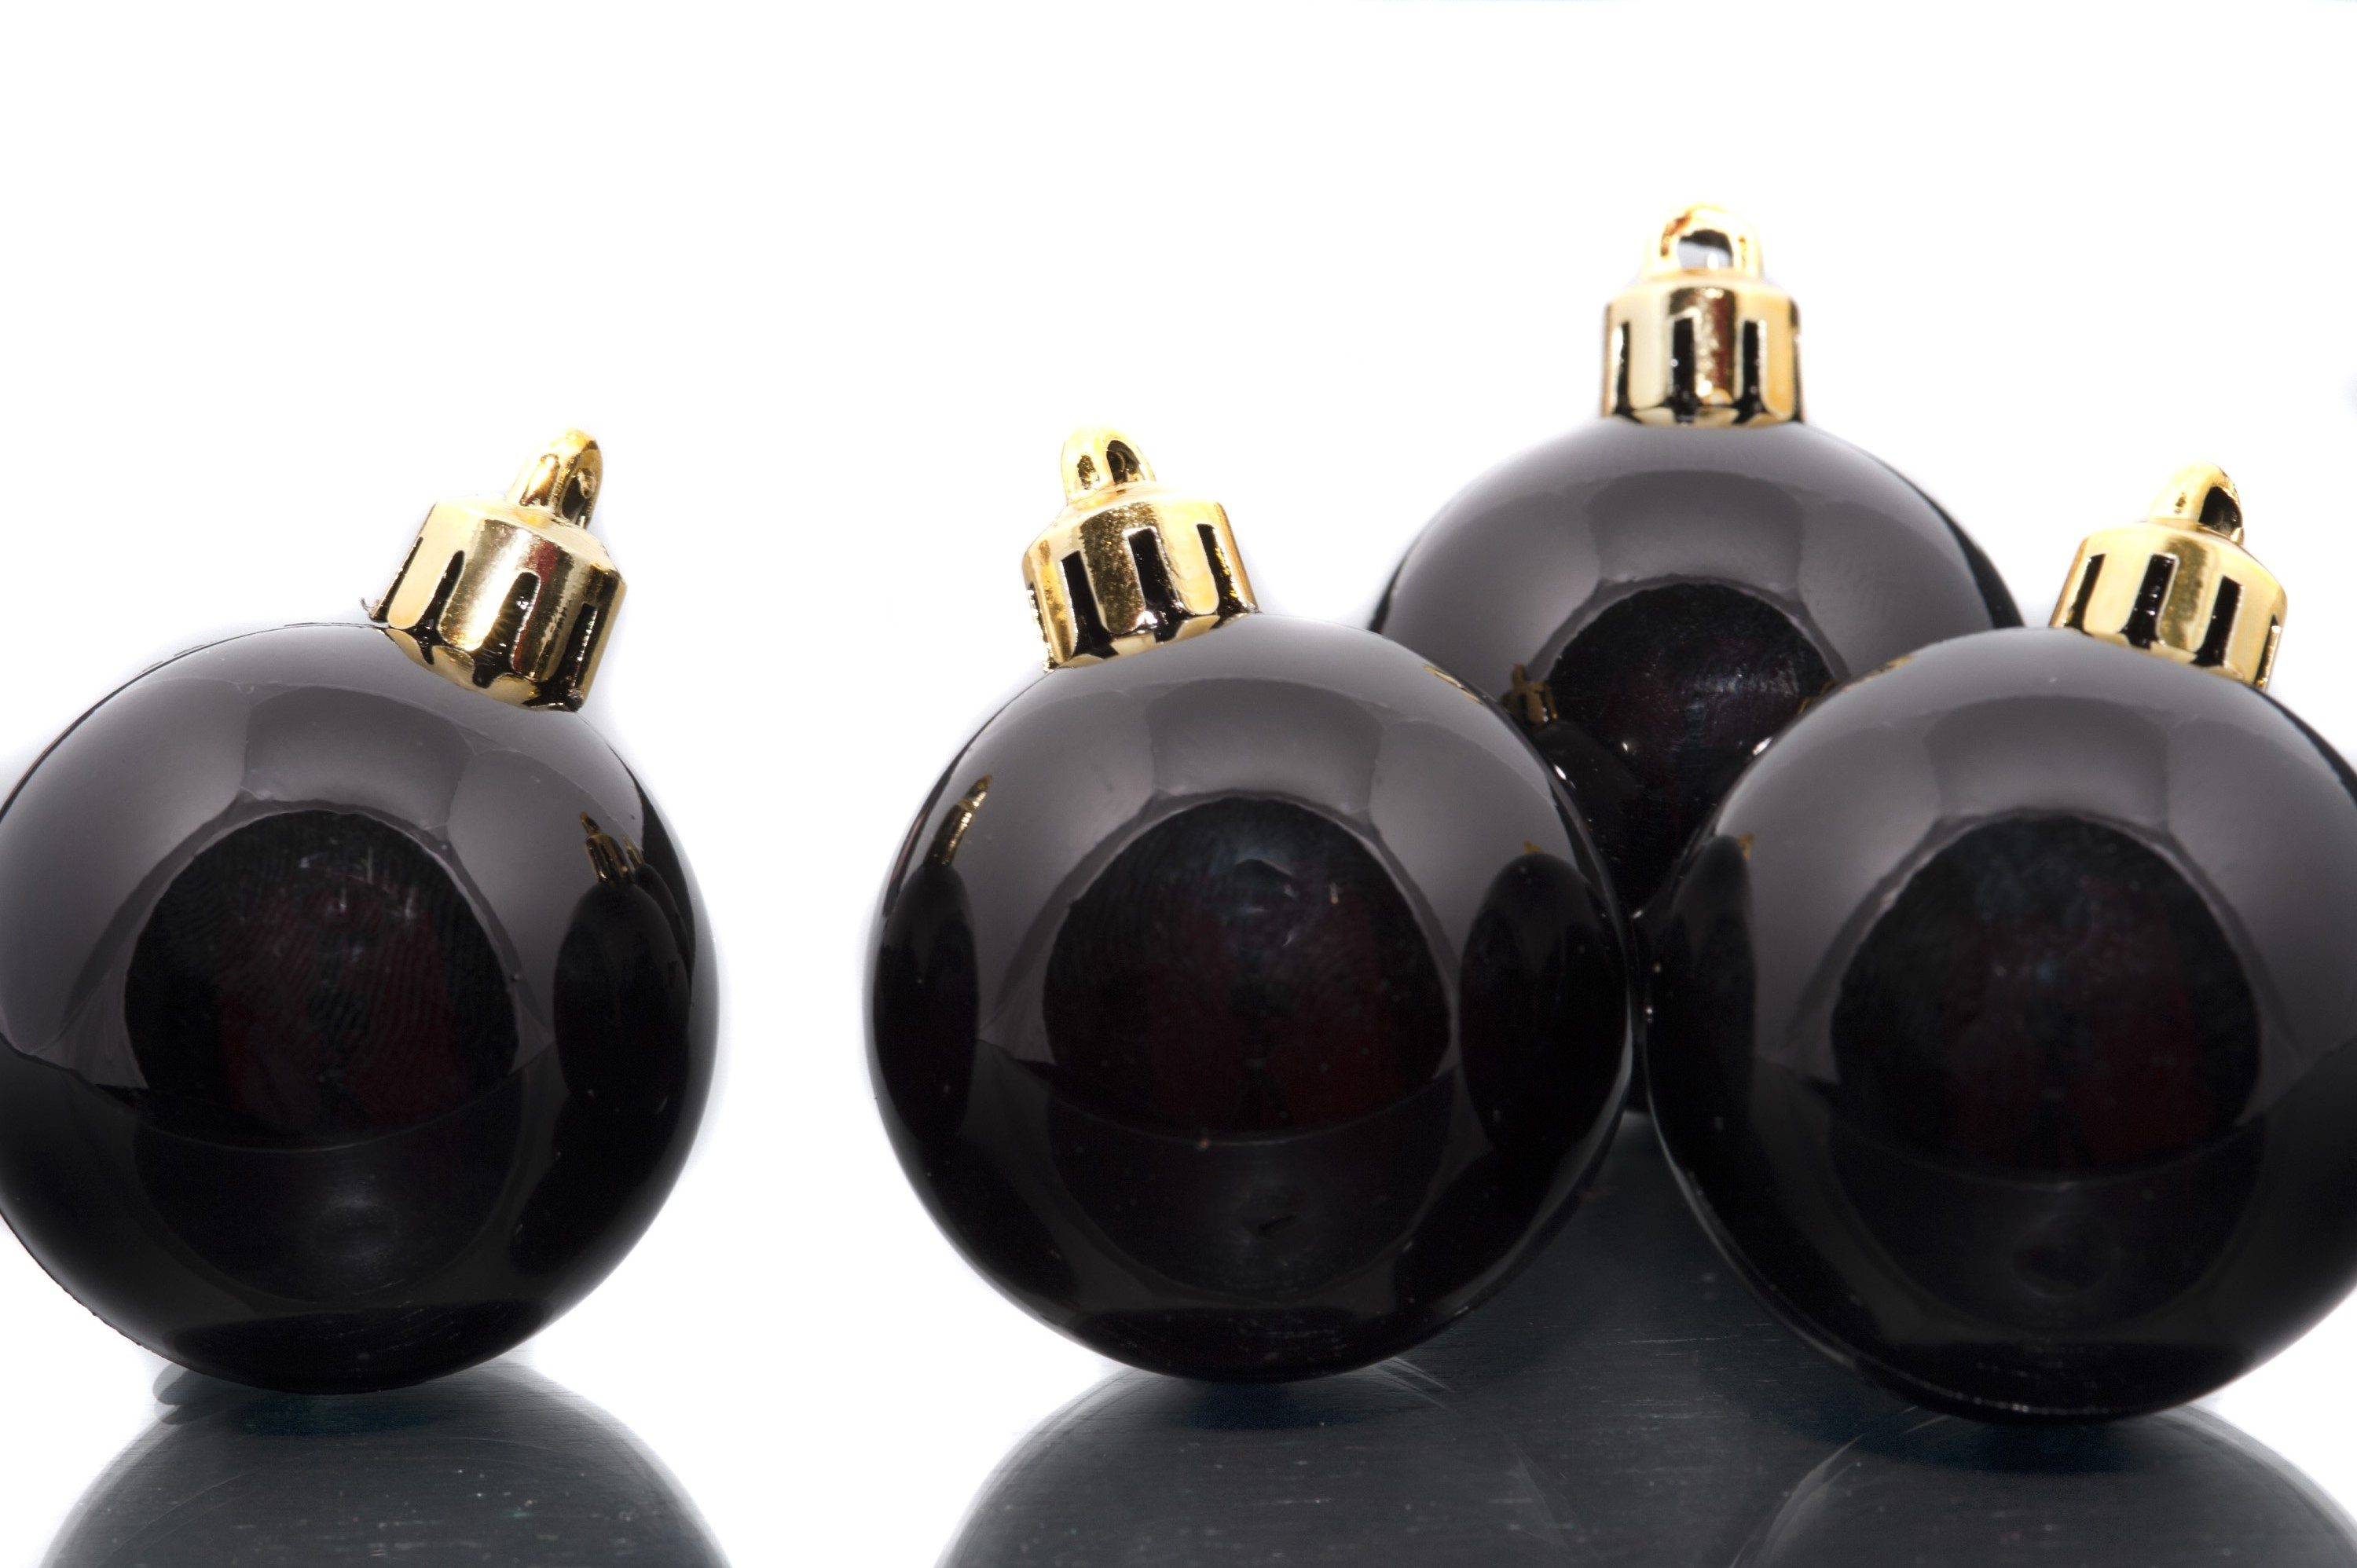 Black festive Christmas baubles lit from above with reflections on a white background